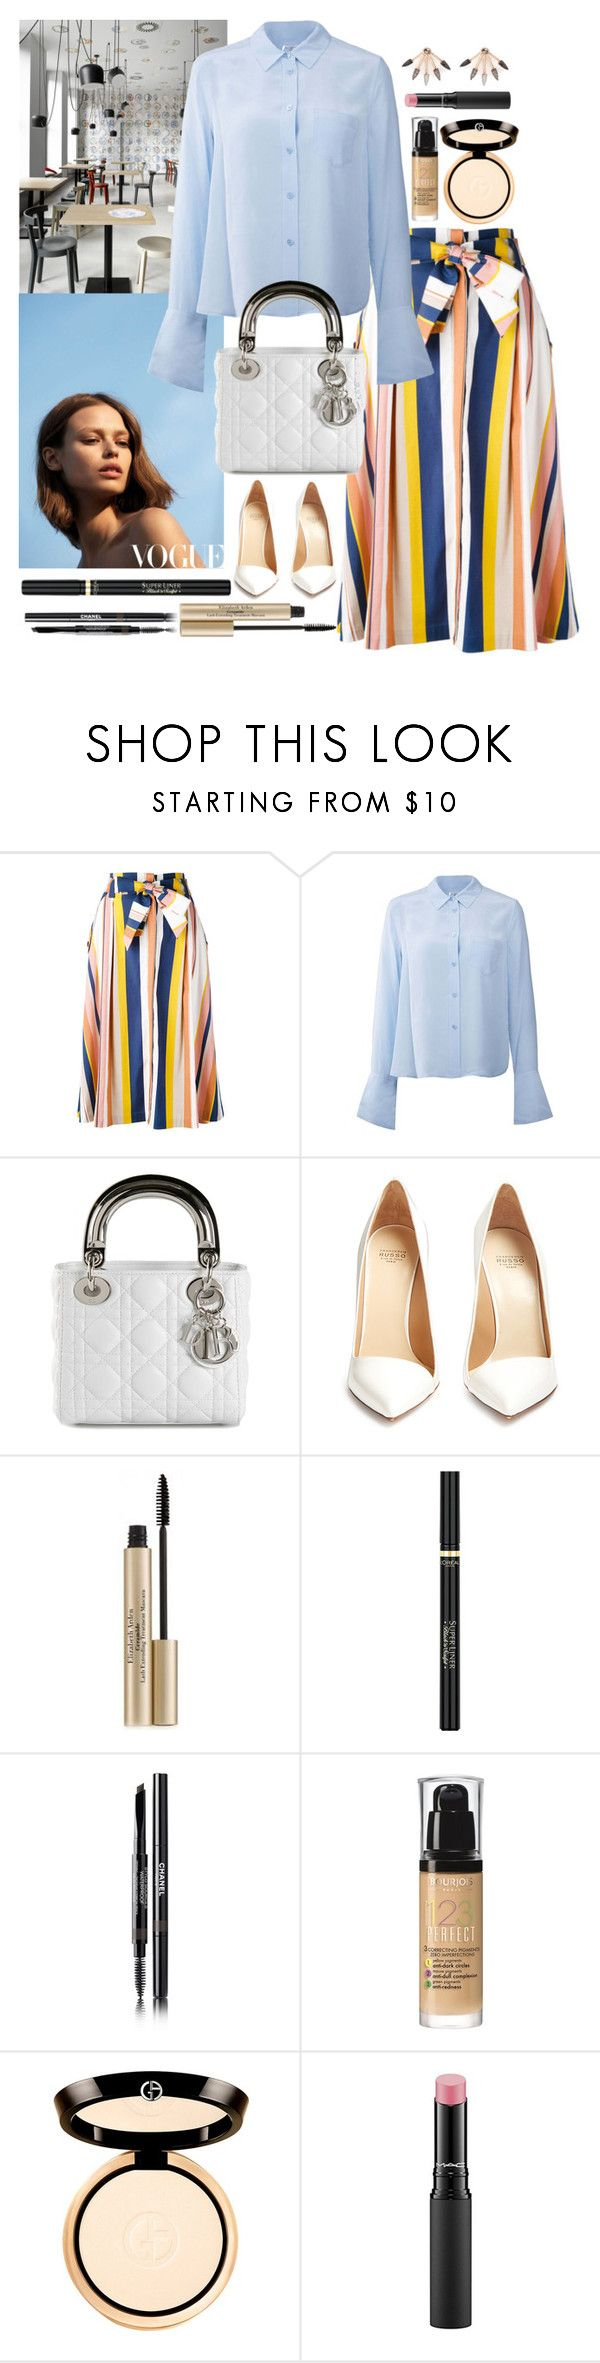 """""""Untitled #584"""" by ngkhhuynstyle ❤ liked on Polyvore featuring Tanya Taylor, Equipment, Francesco Russo, Elizabeth Arden, L'Oréal Paris, Chanel, Bourjois, Giorgio Armani, MAC Cosmetics and Pamela Love"""